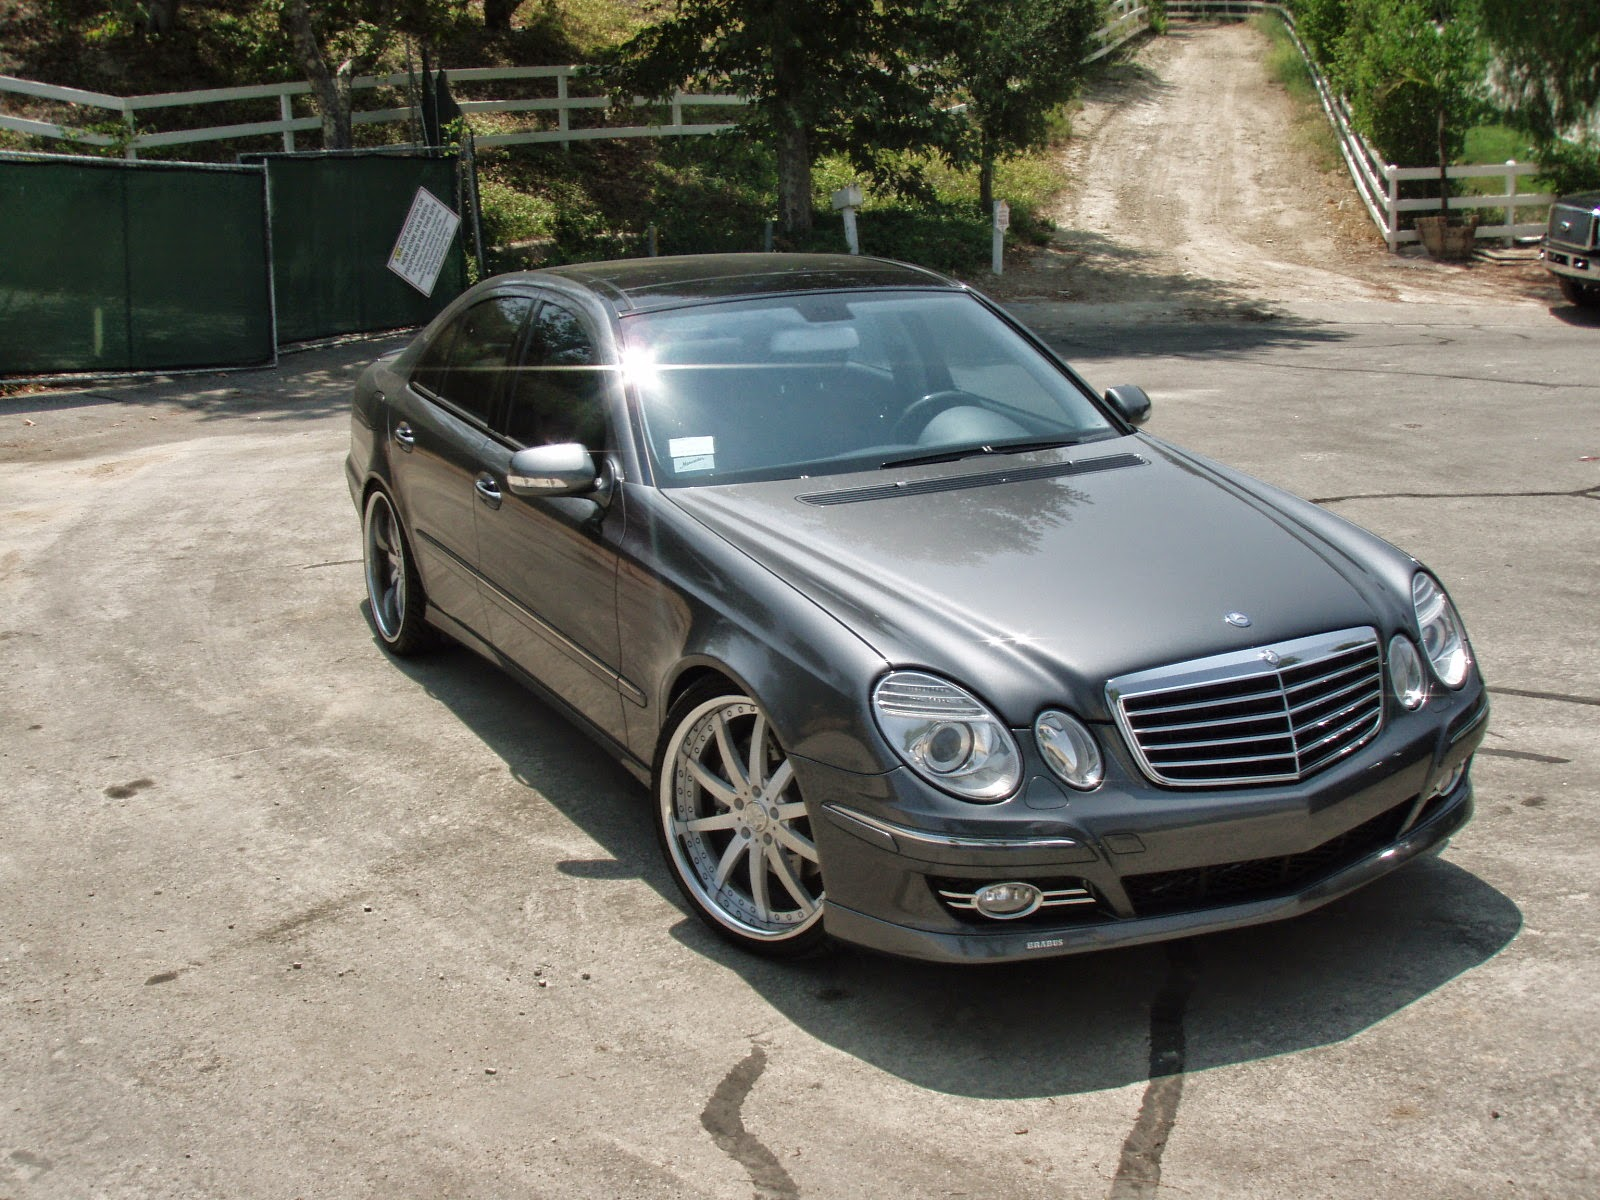 Mercedes benz w211 e350 4matic tuning benztuning for Pictures of a mercedes benz